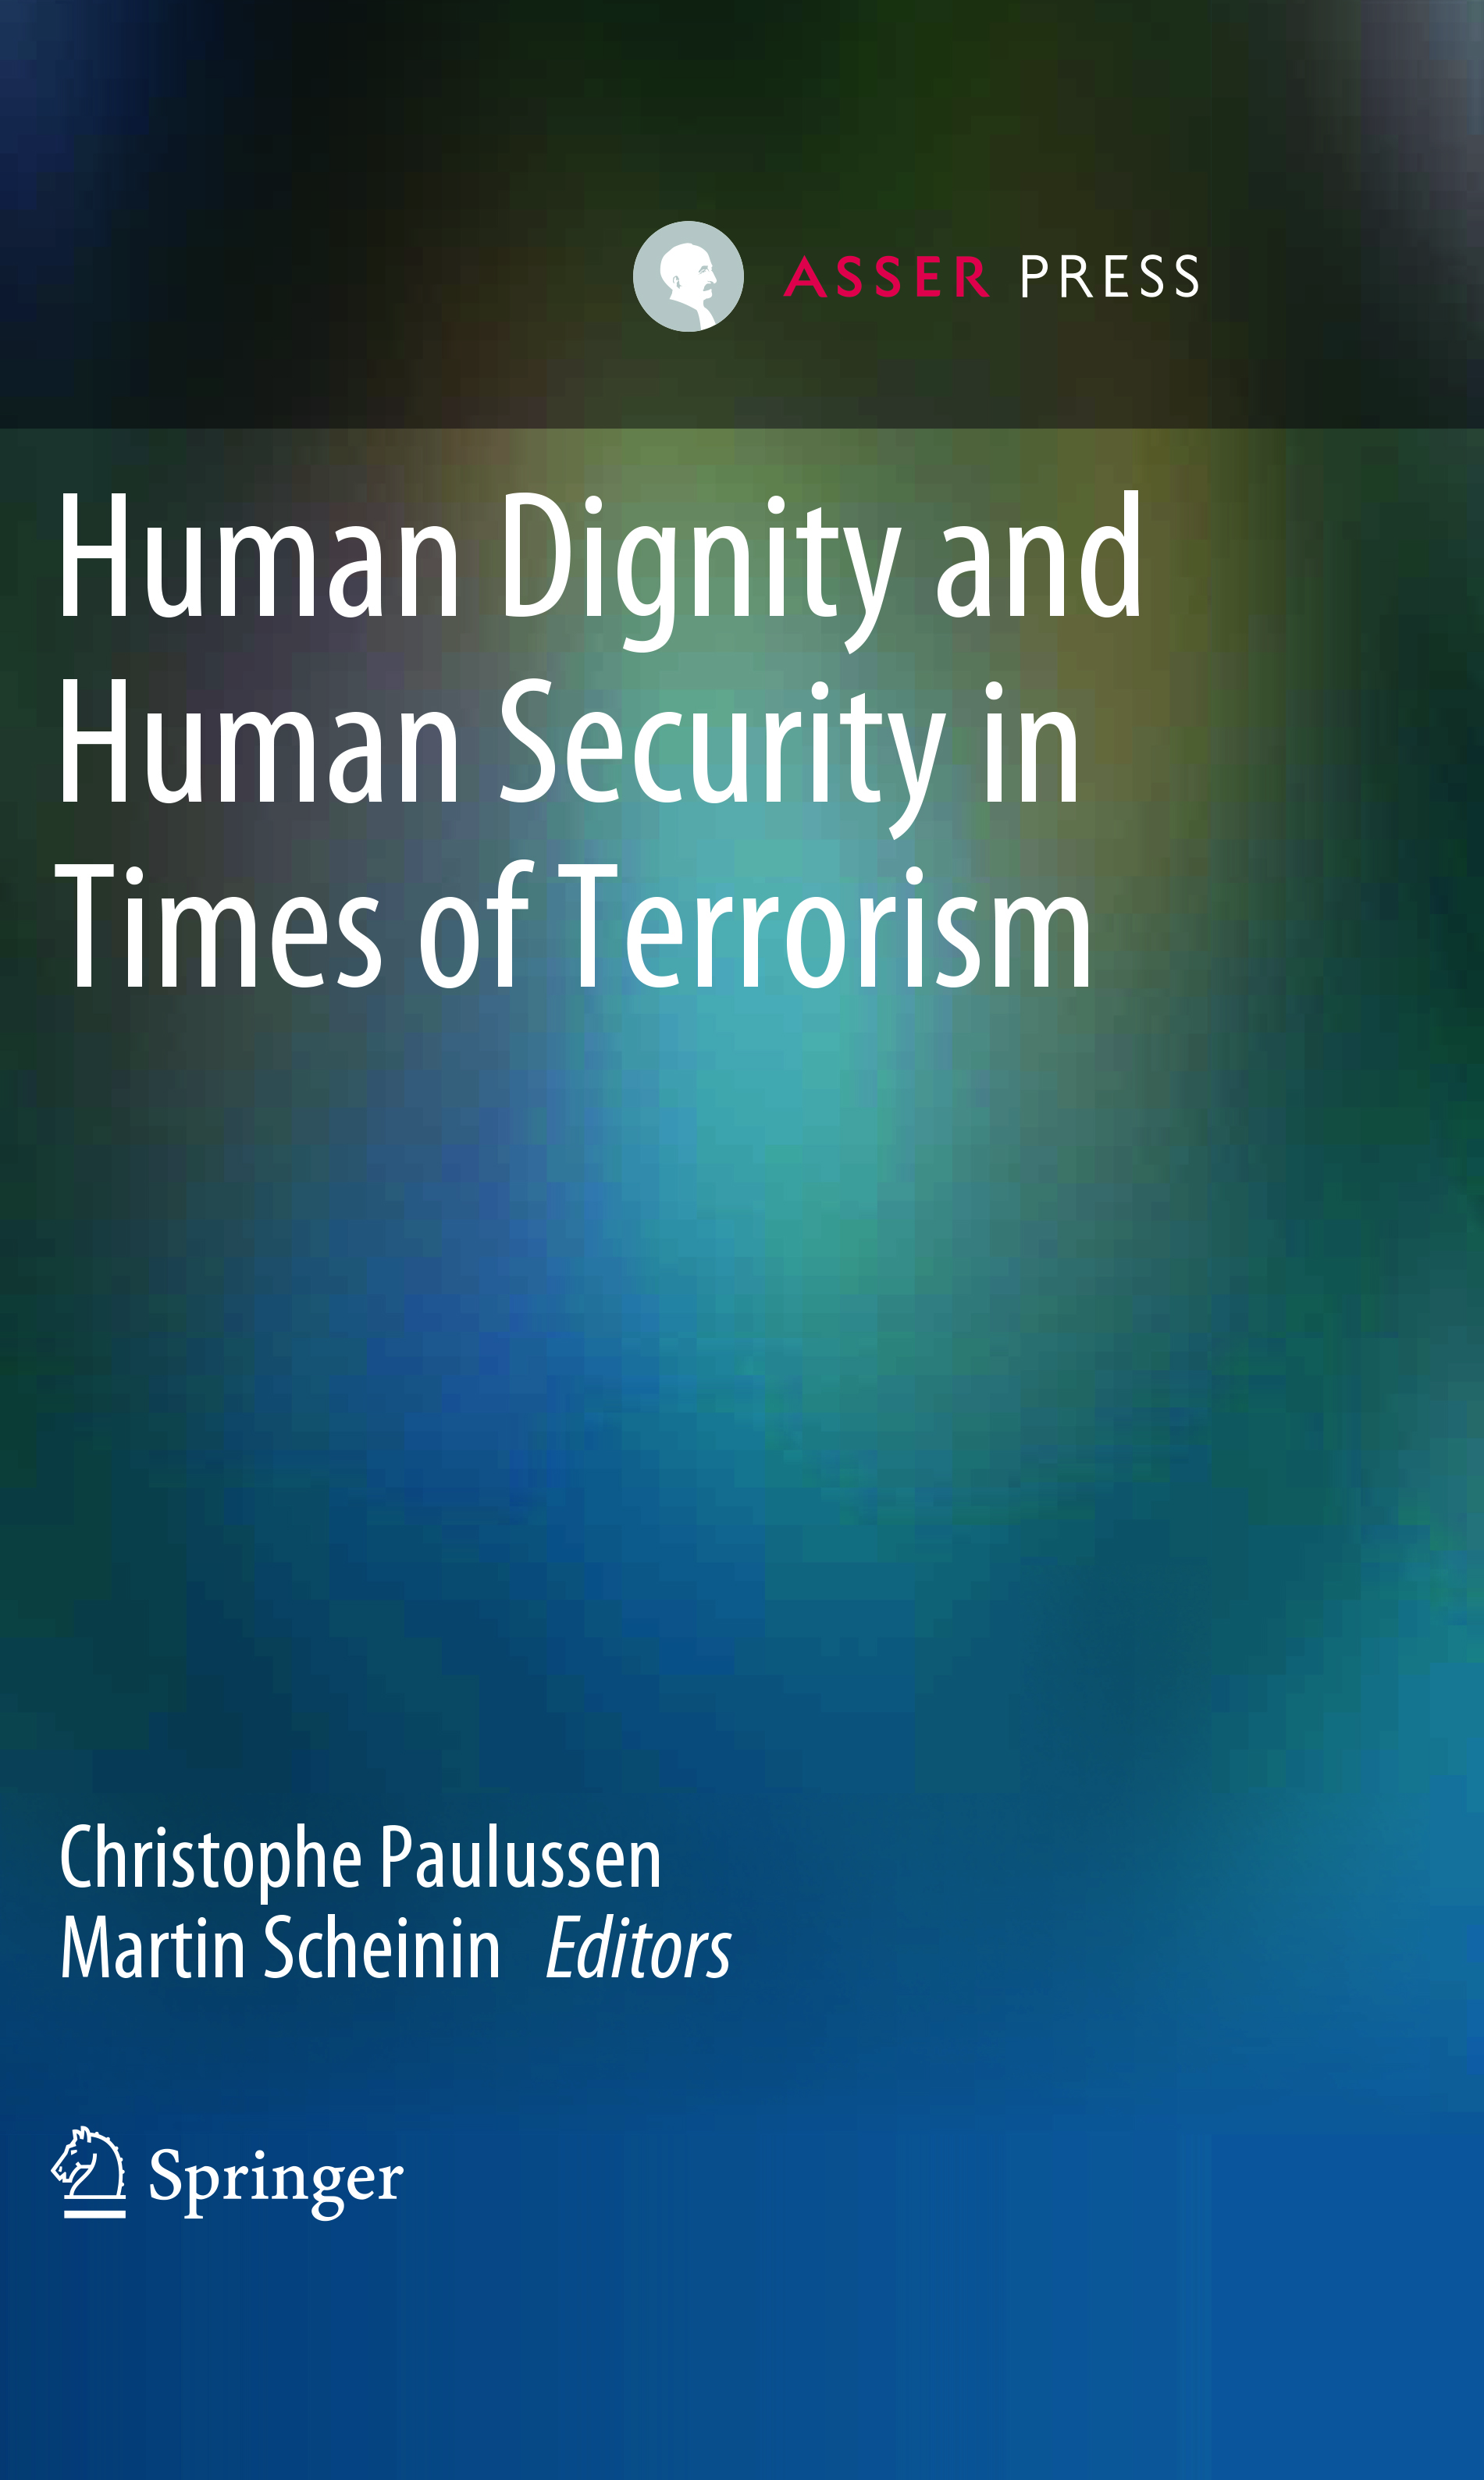 Human Dignity and Human Security in Times of Terrorism